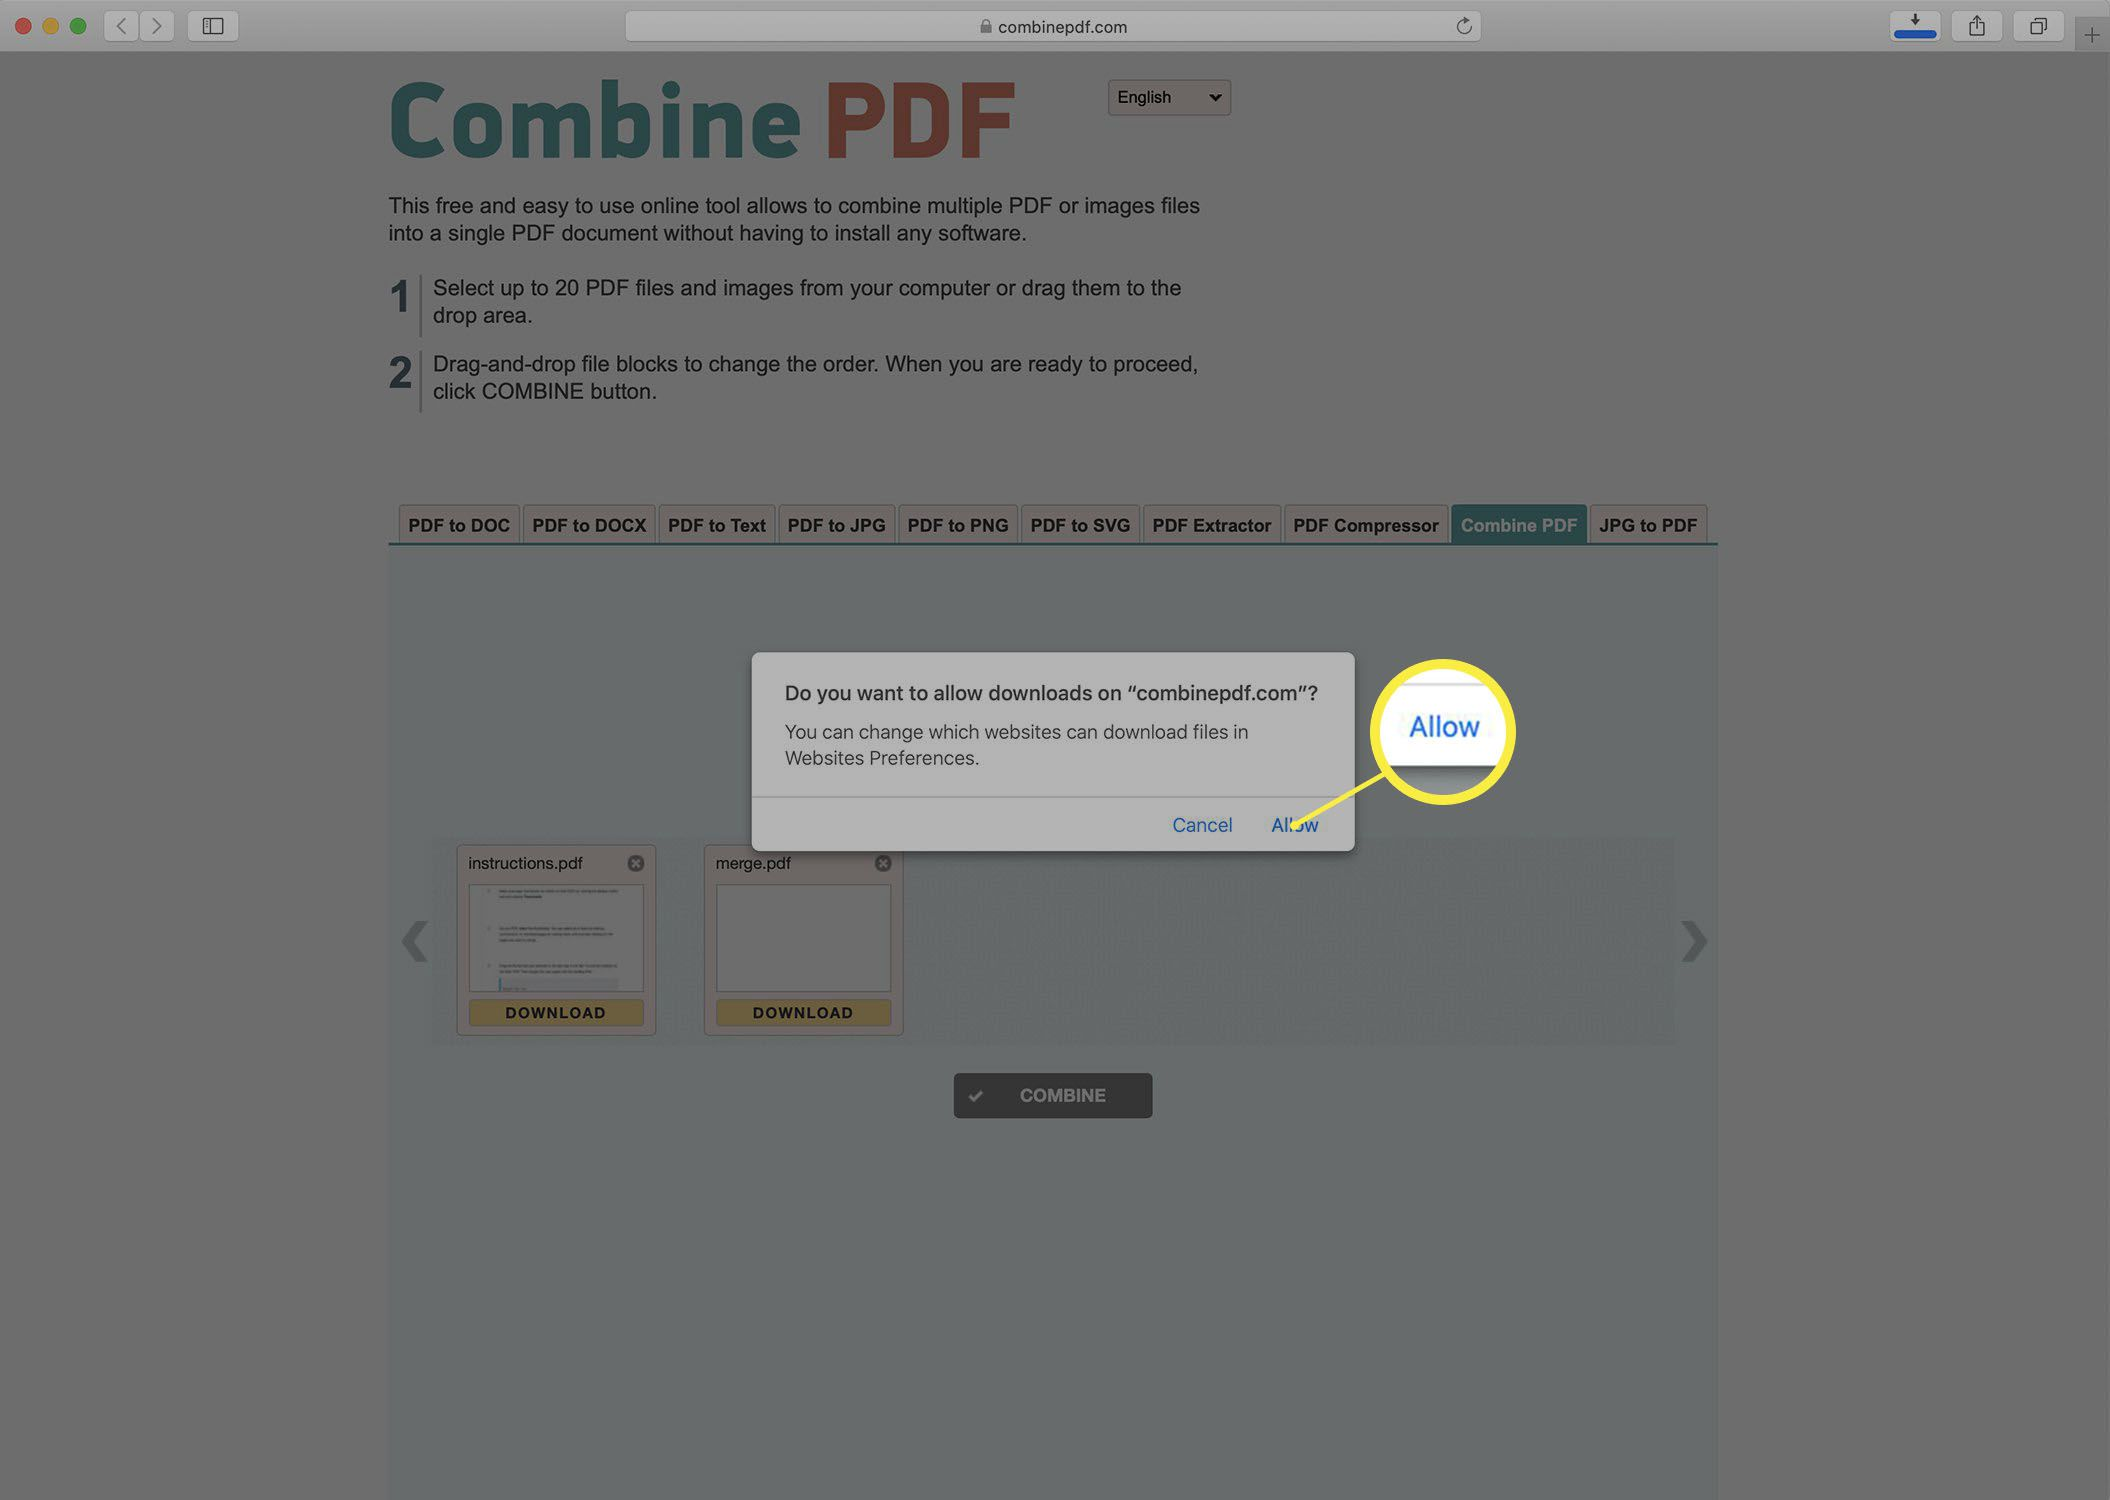 Screenshot downloading a merged PDF from the Combine PDF website.